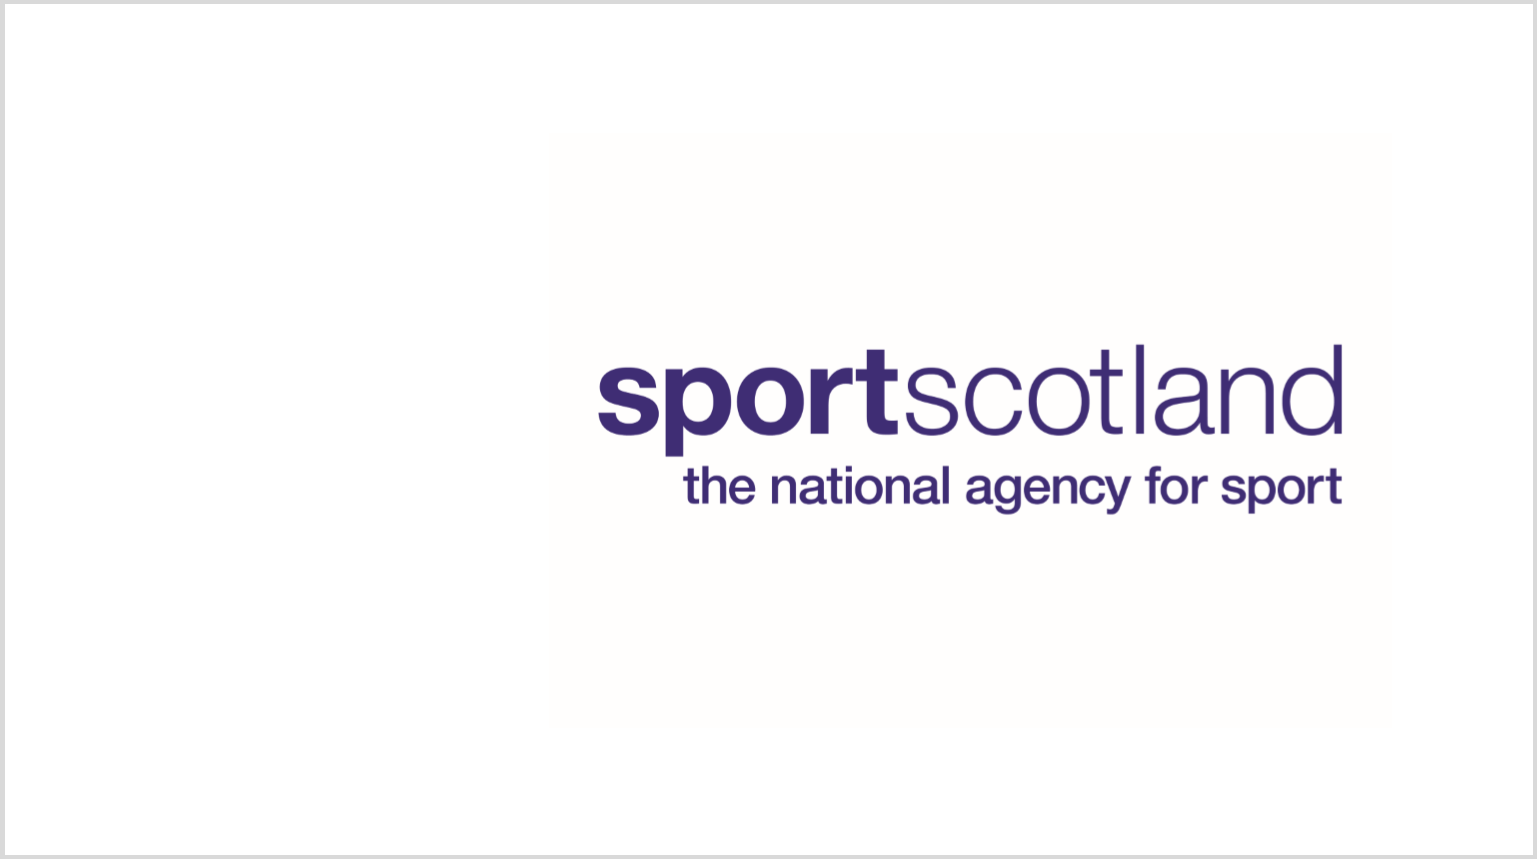 Applications are now open for the sportscotland Young People's Sport Panel!